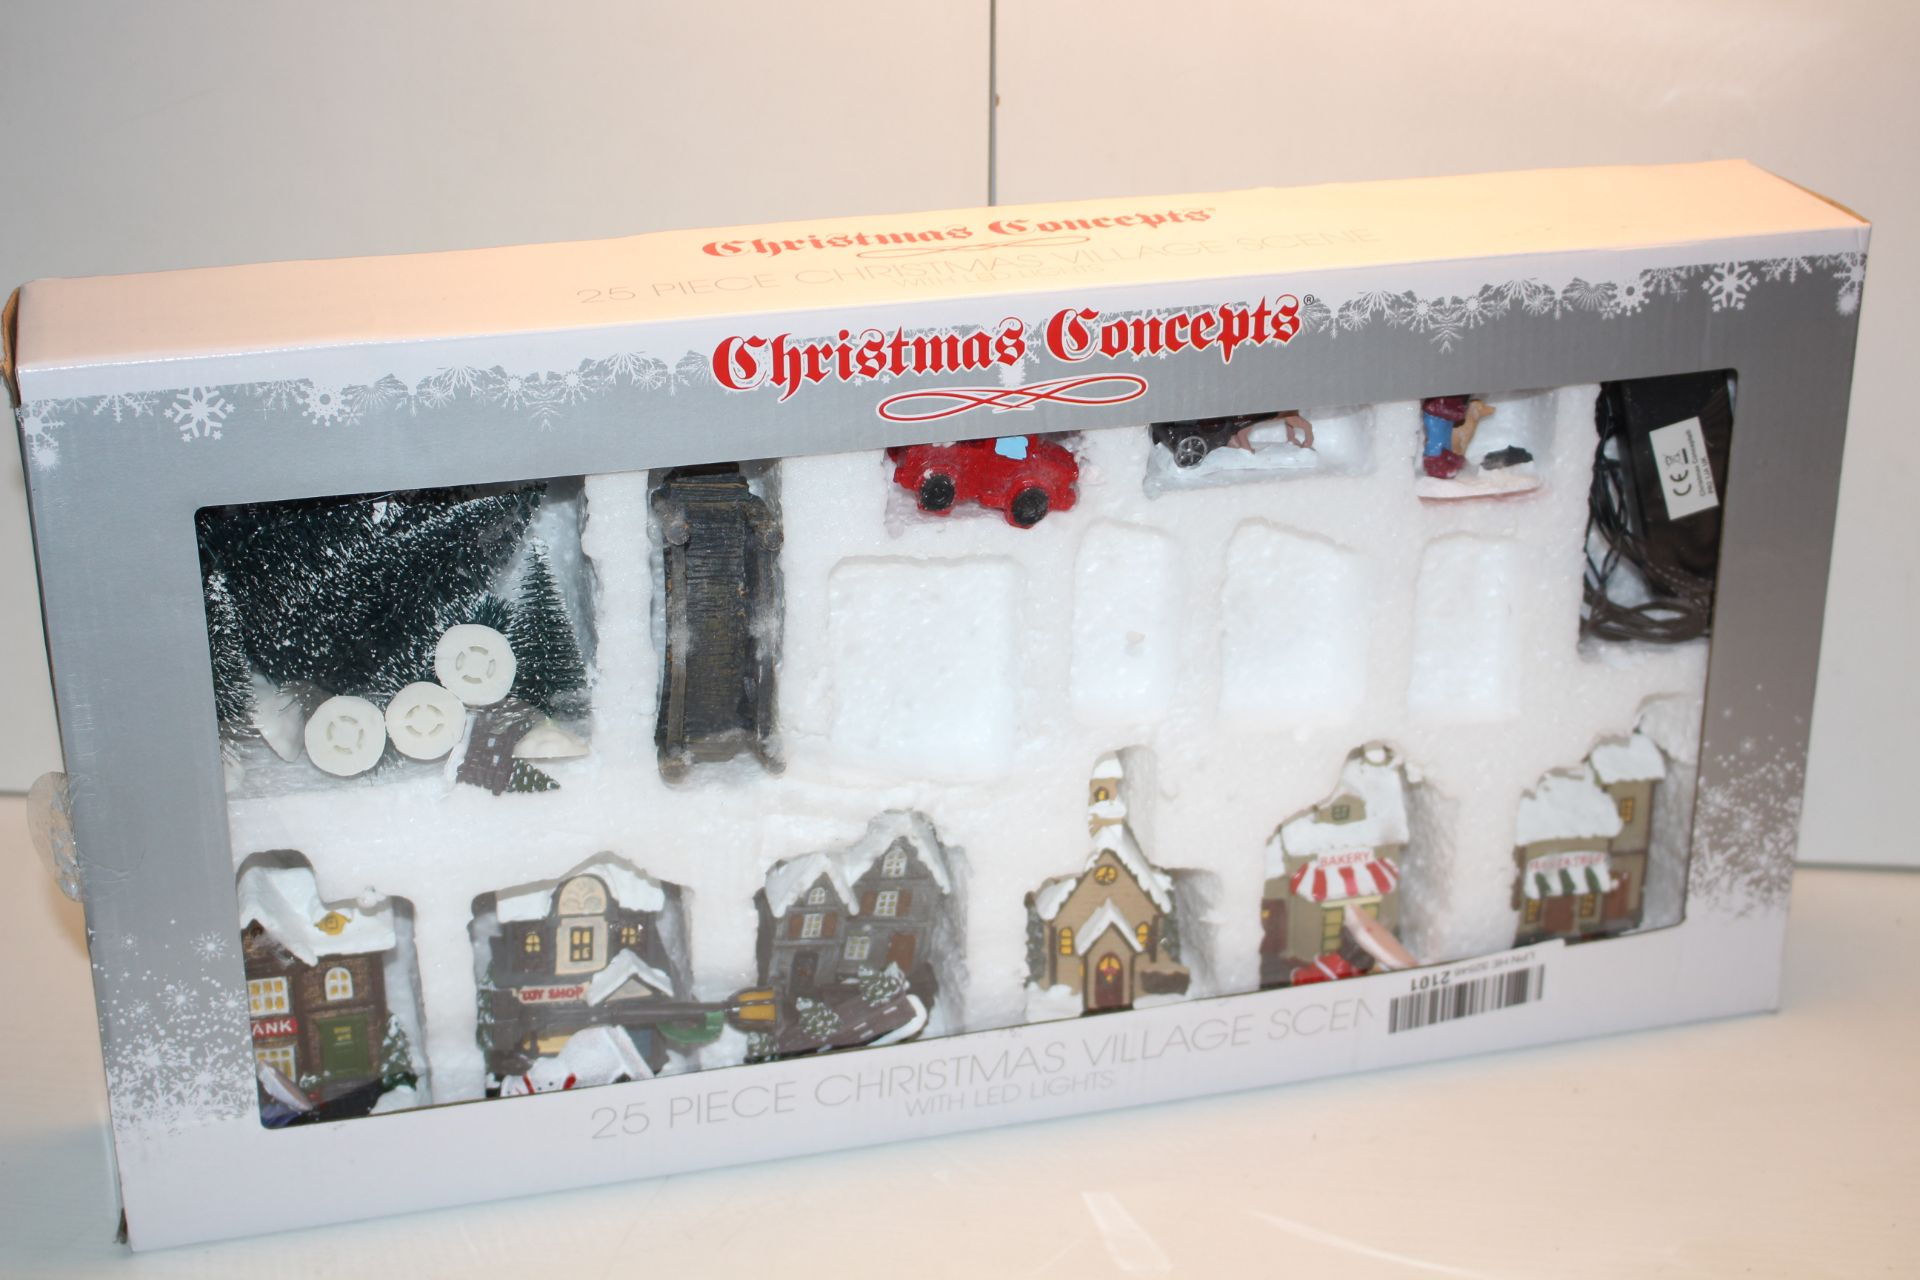 BOXED CHRISTMAS CONCEPTS 25 PIECE CHRISTMAS VILLAGE SET Condition ReportAppraisal Available on